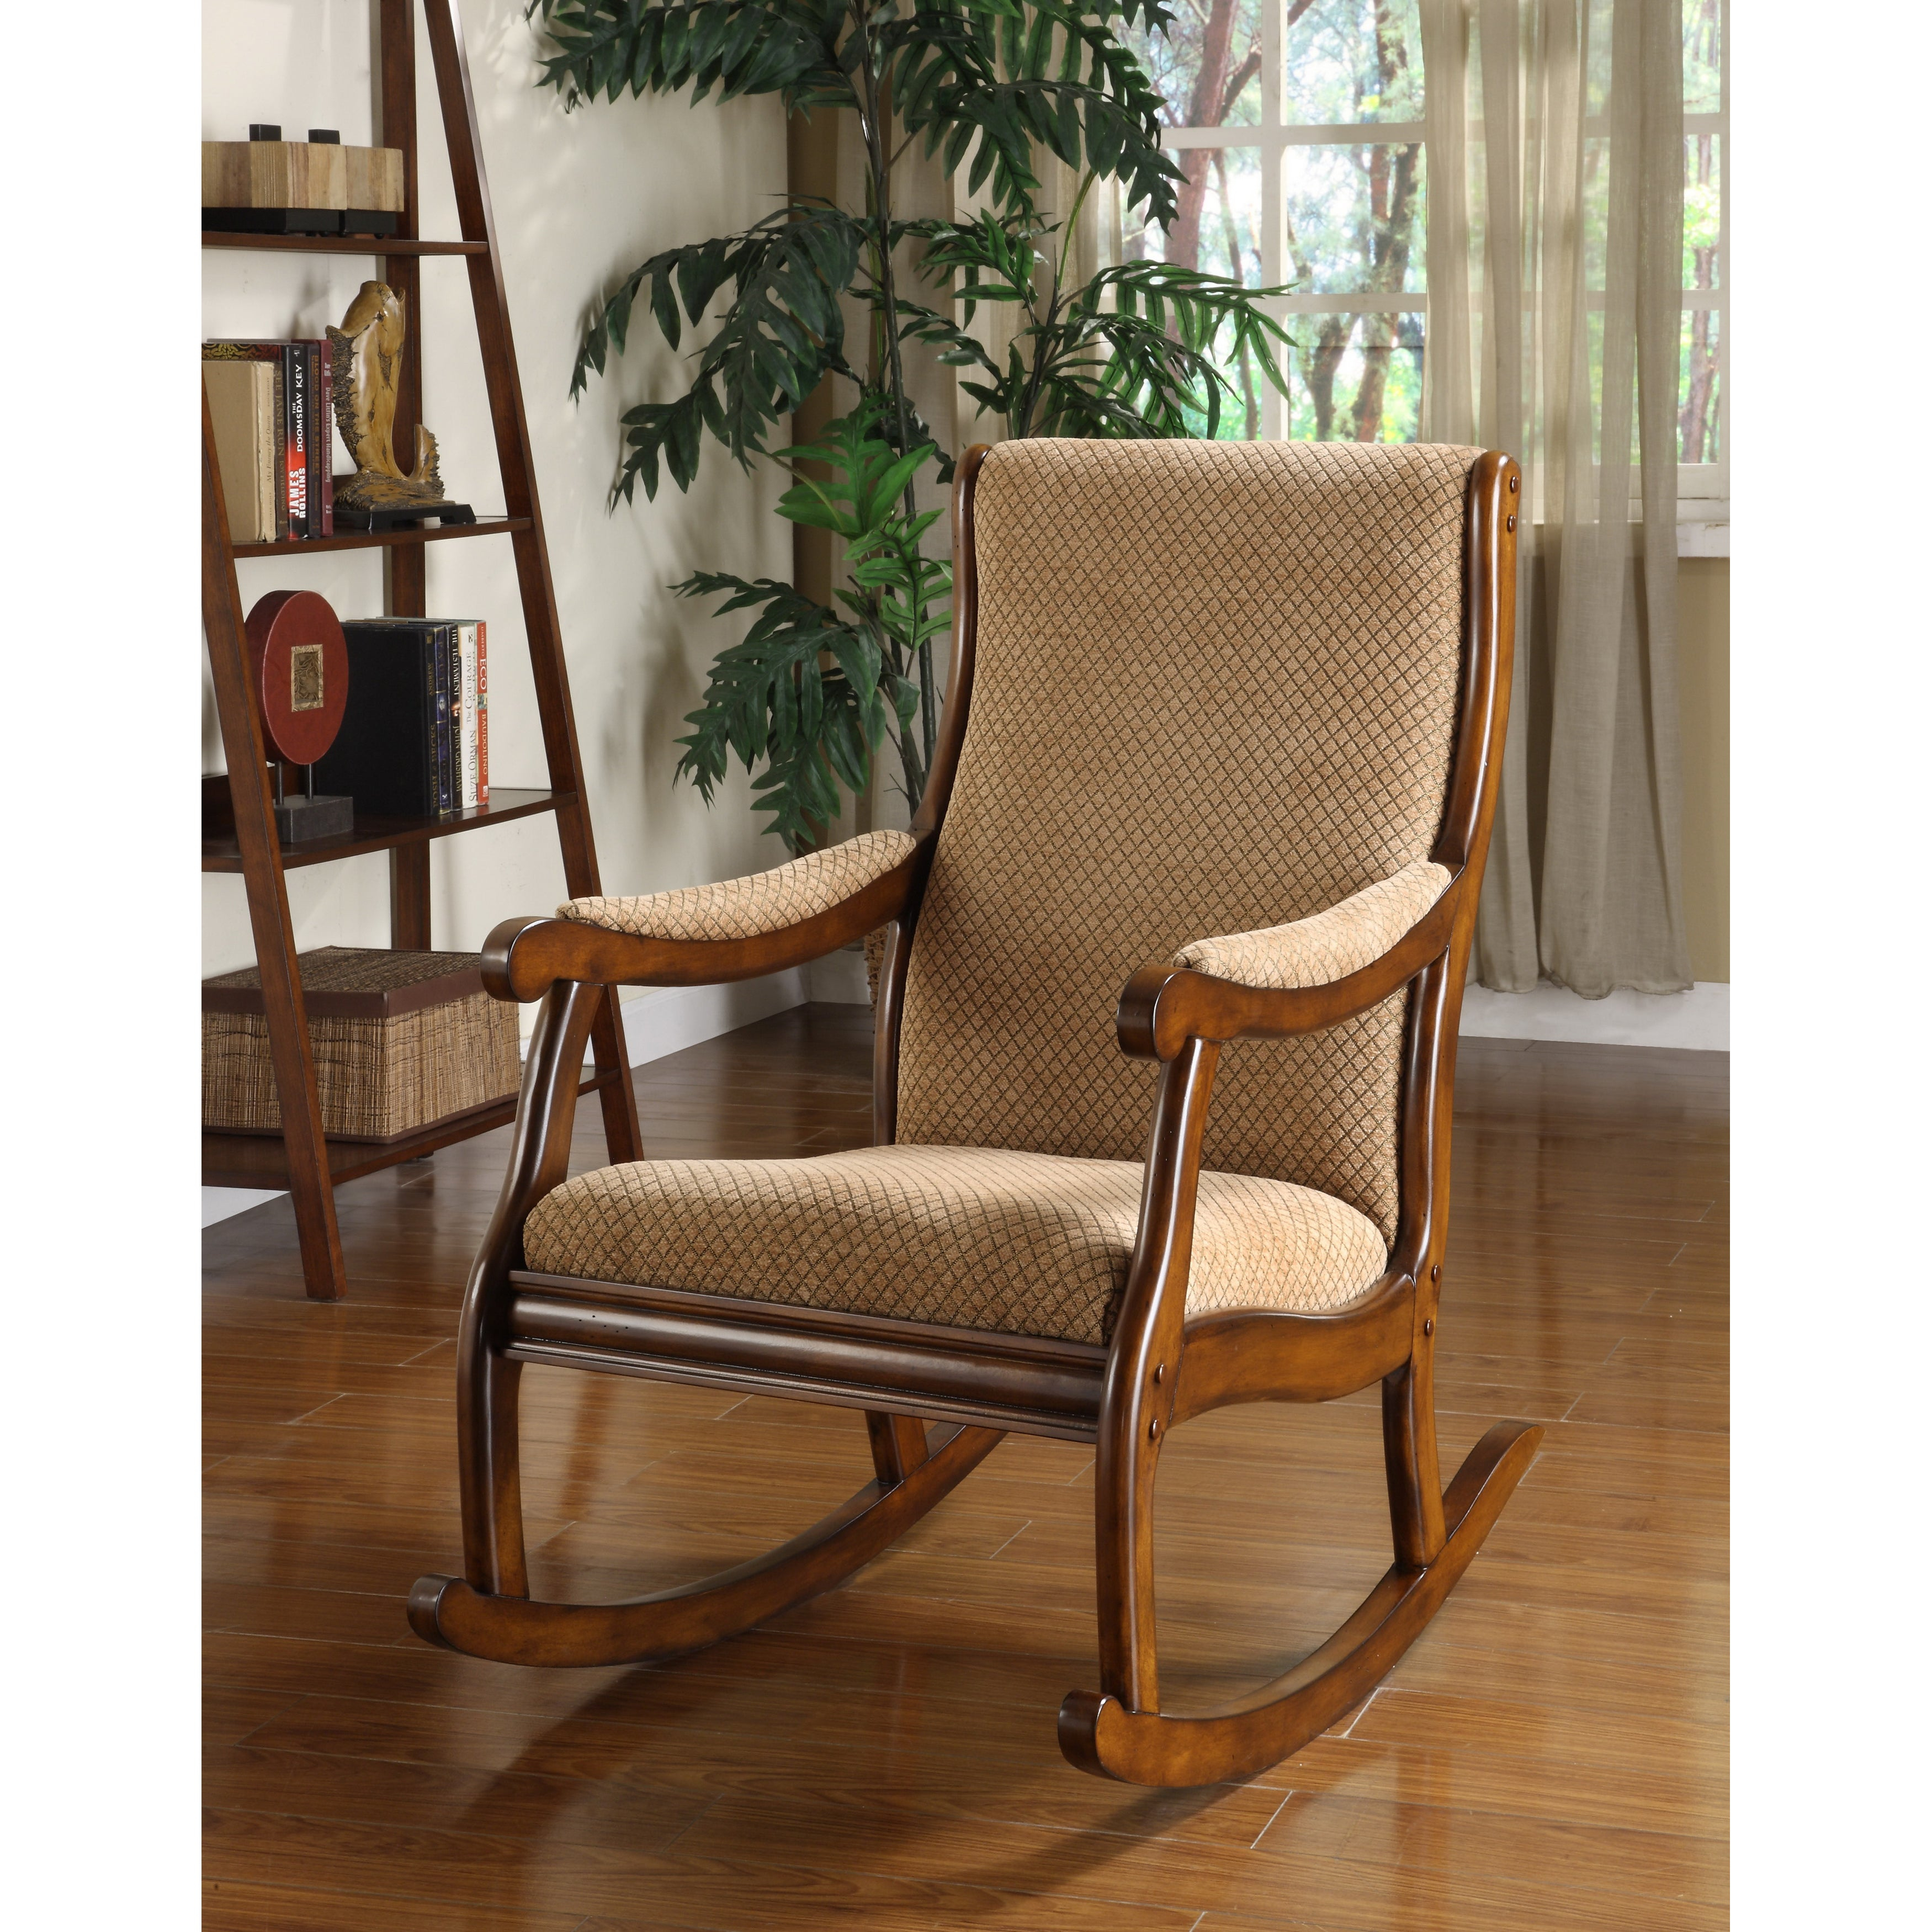 Antique Transitional Warm Oak Rocking Chairfoa Regarding Rosewood Traditional Dark Oak Rocking Accent Chairs (View 5 of 20)